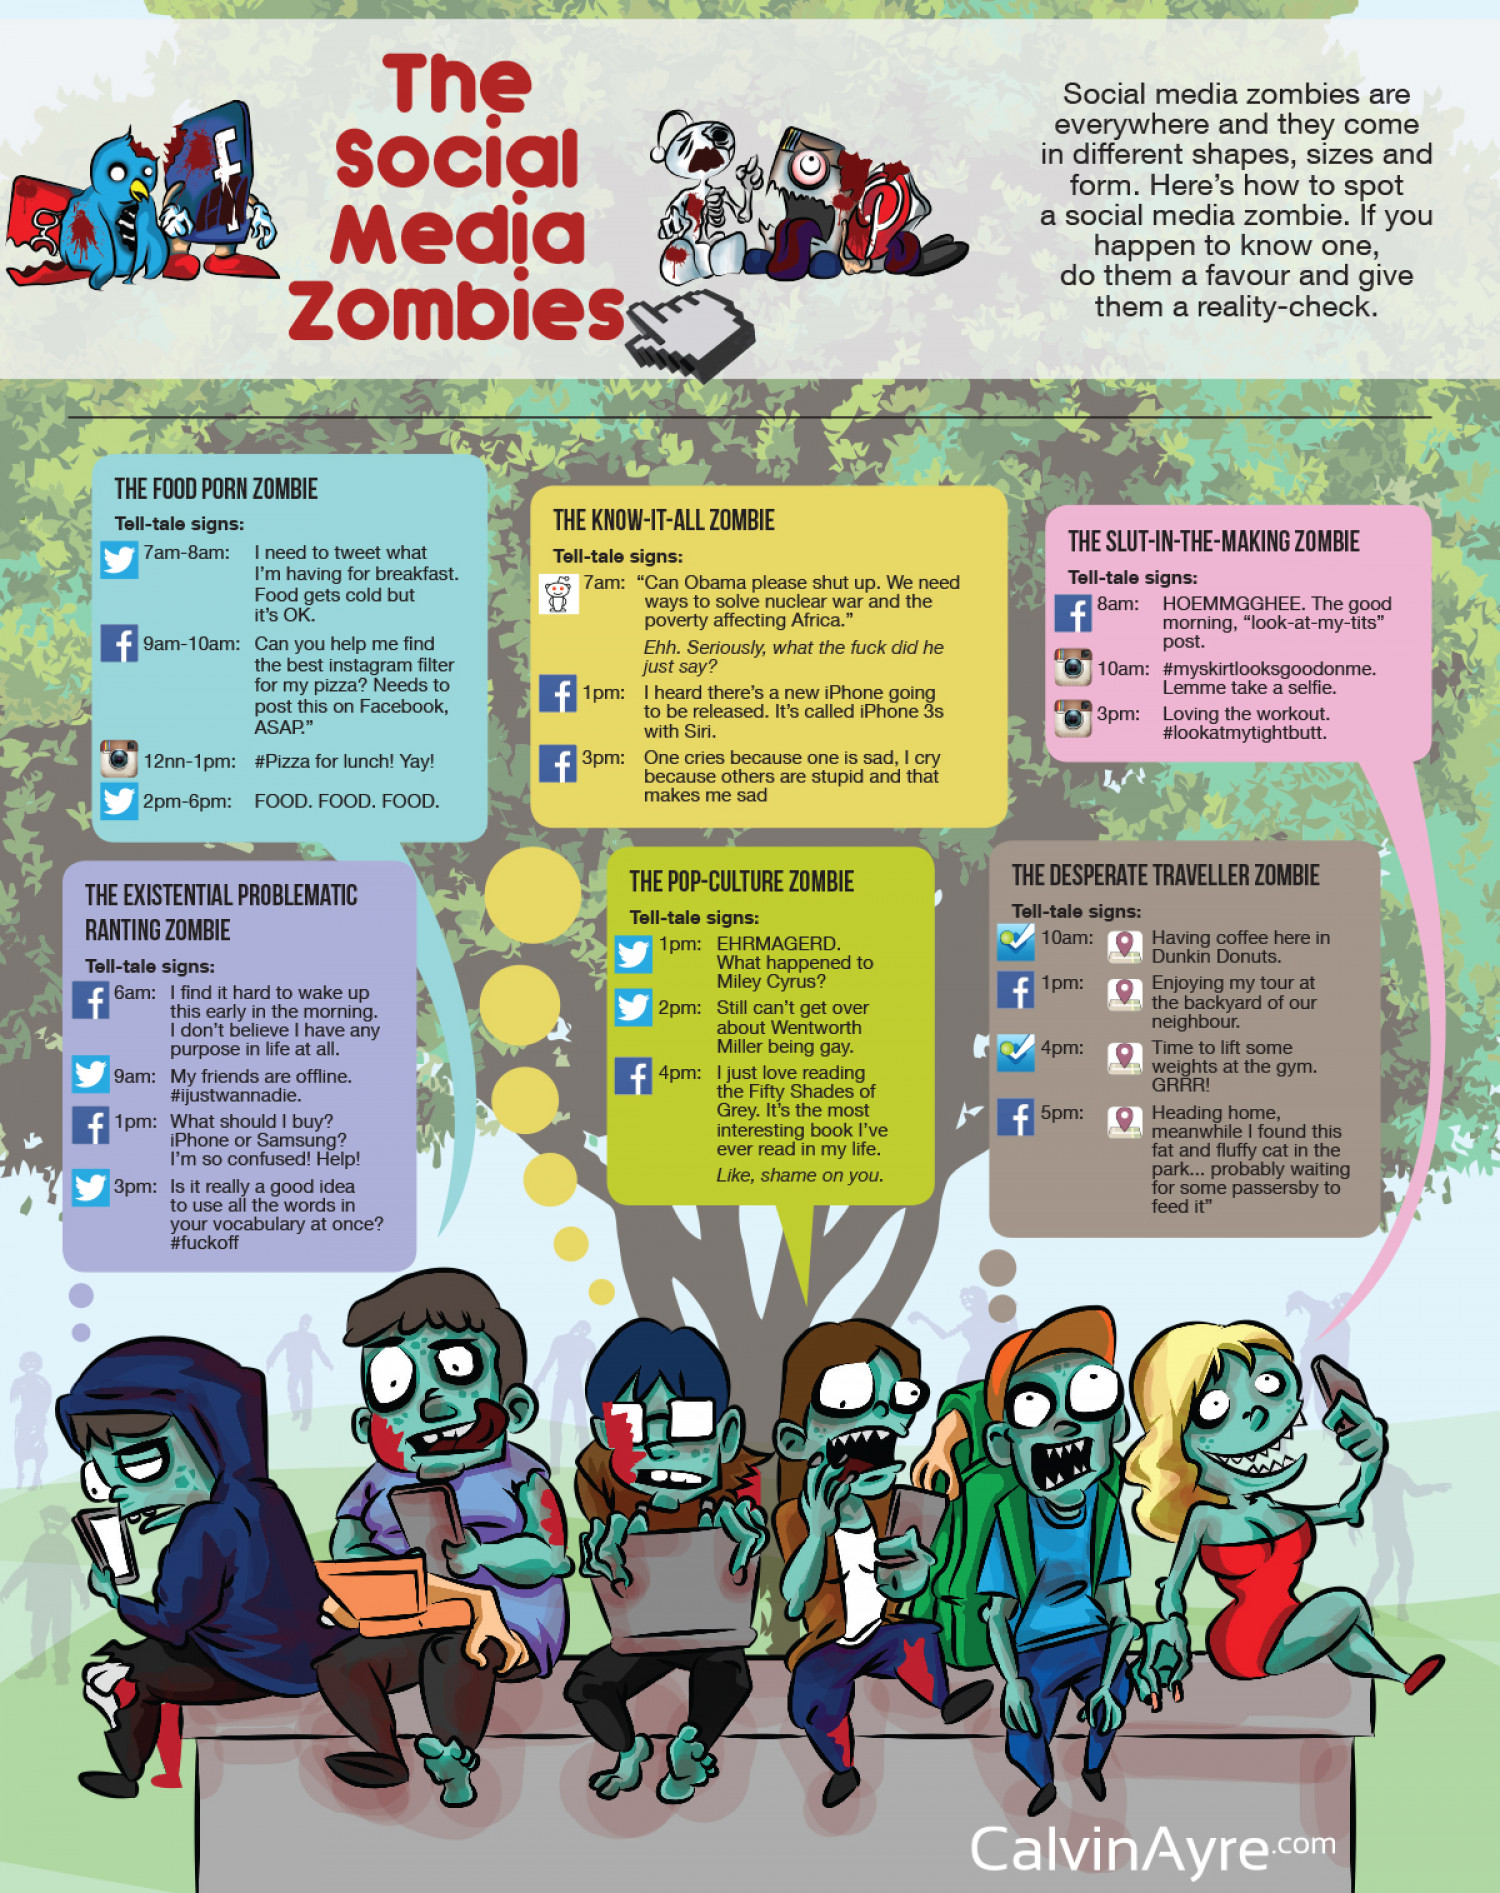 The Social Media Zombies Infographic